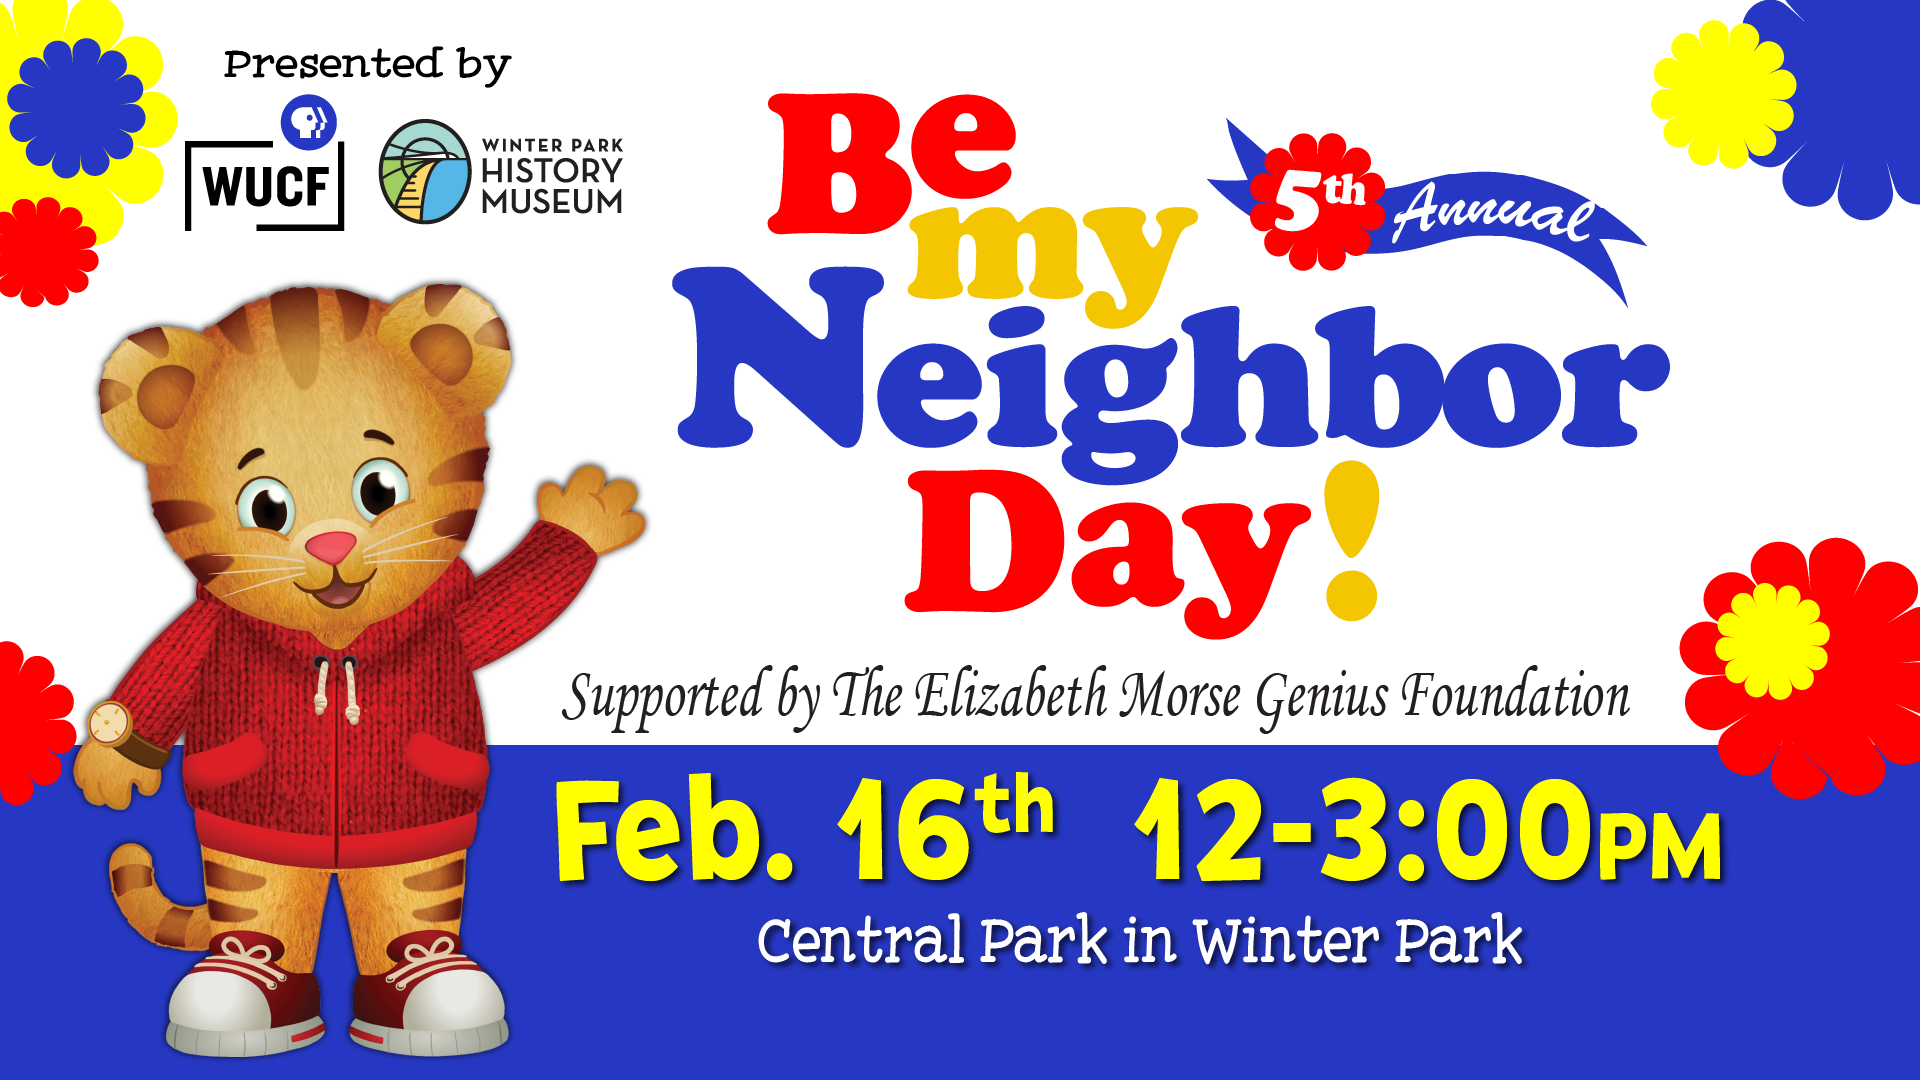 WUCF's Be My Neighbor Day in Winter Park